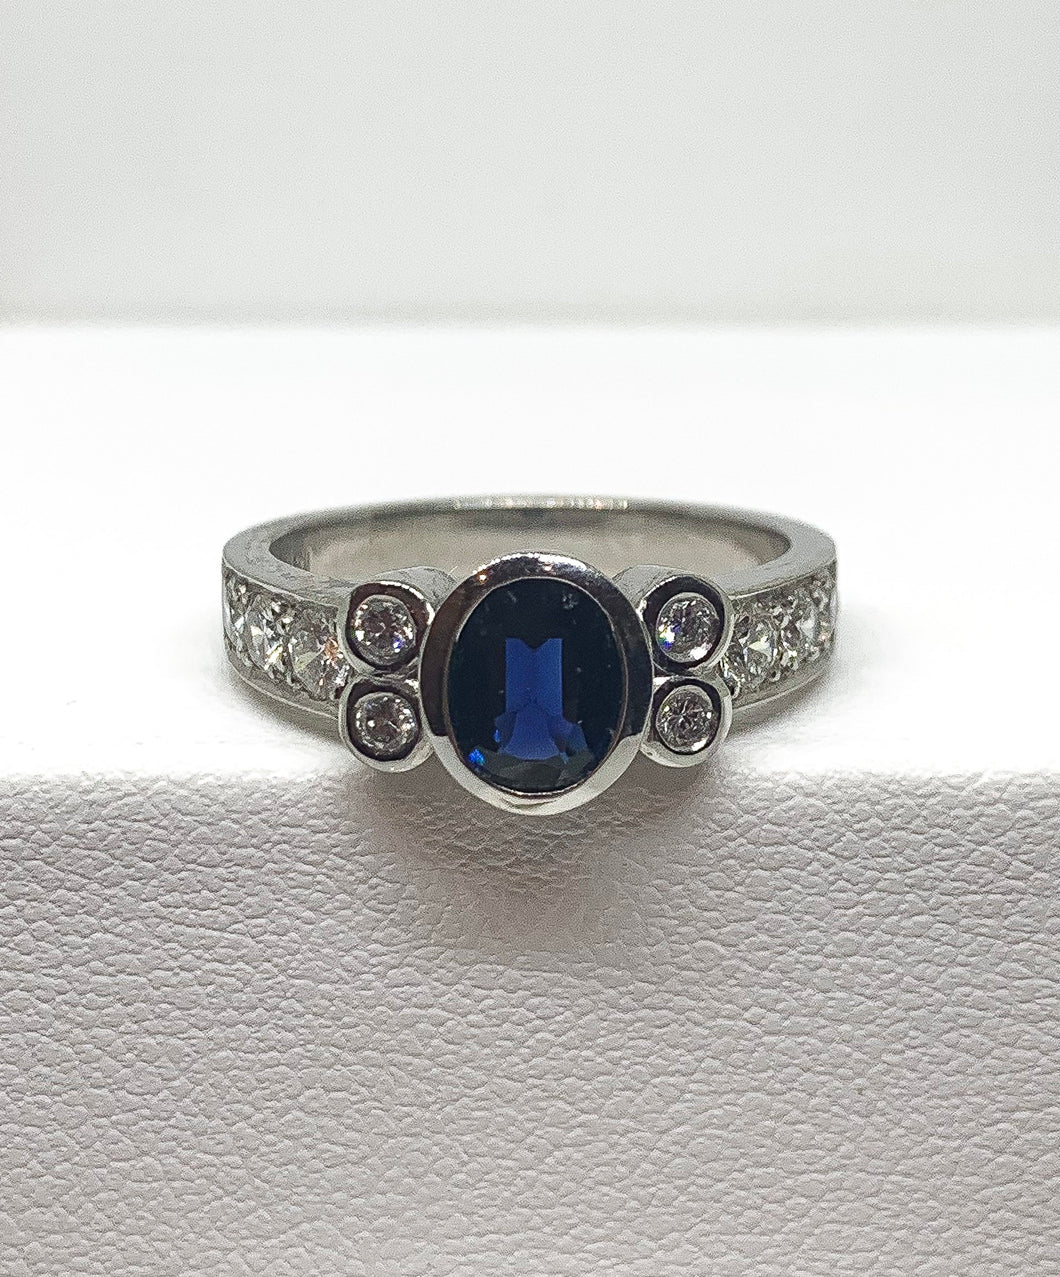 18ct White Gold Australian Sapphire & Diamond Ring